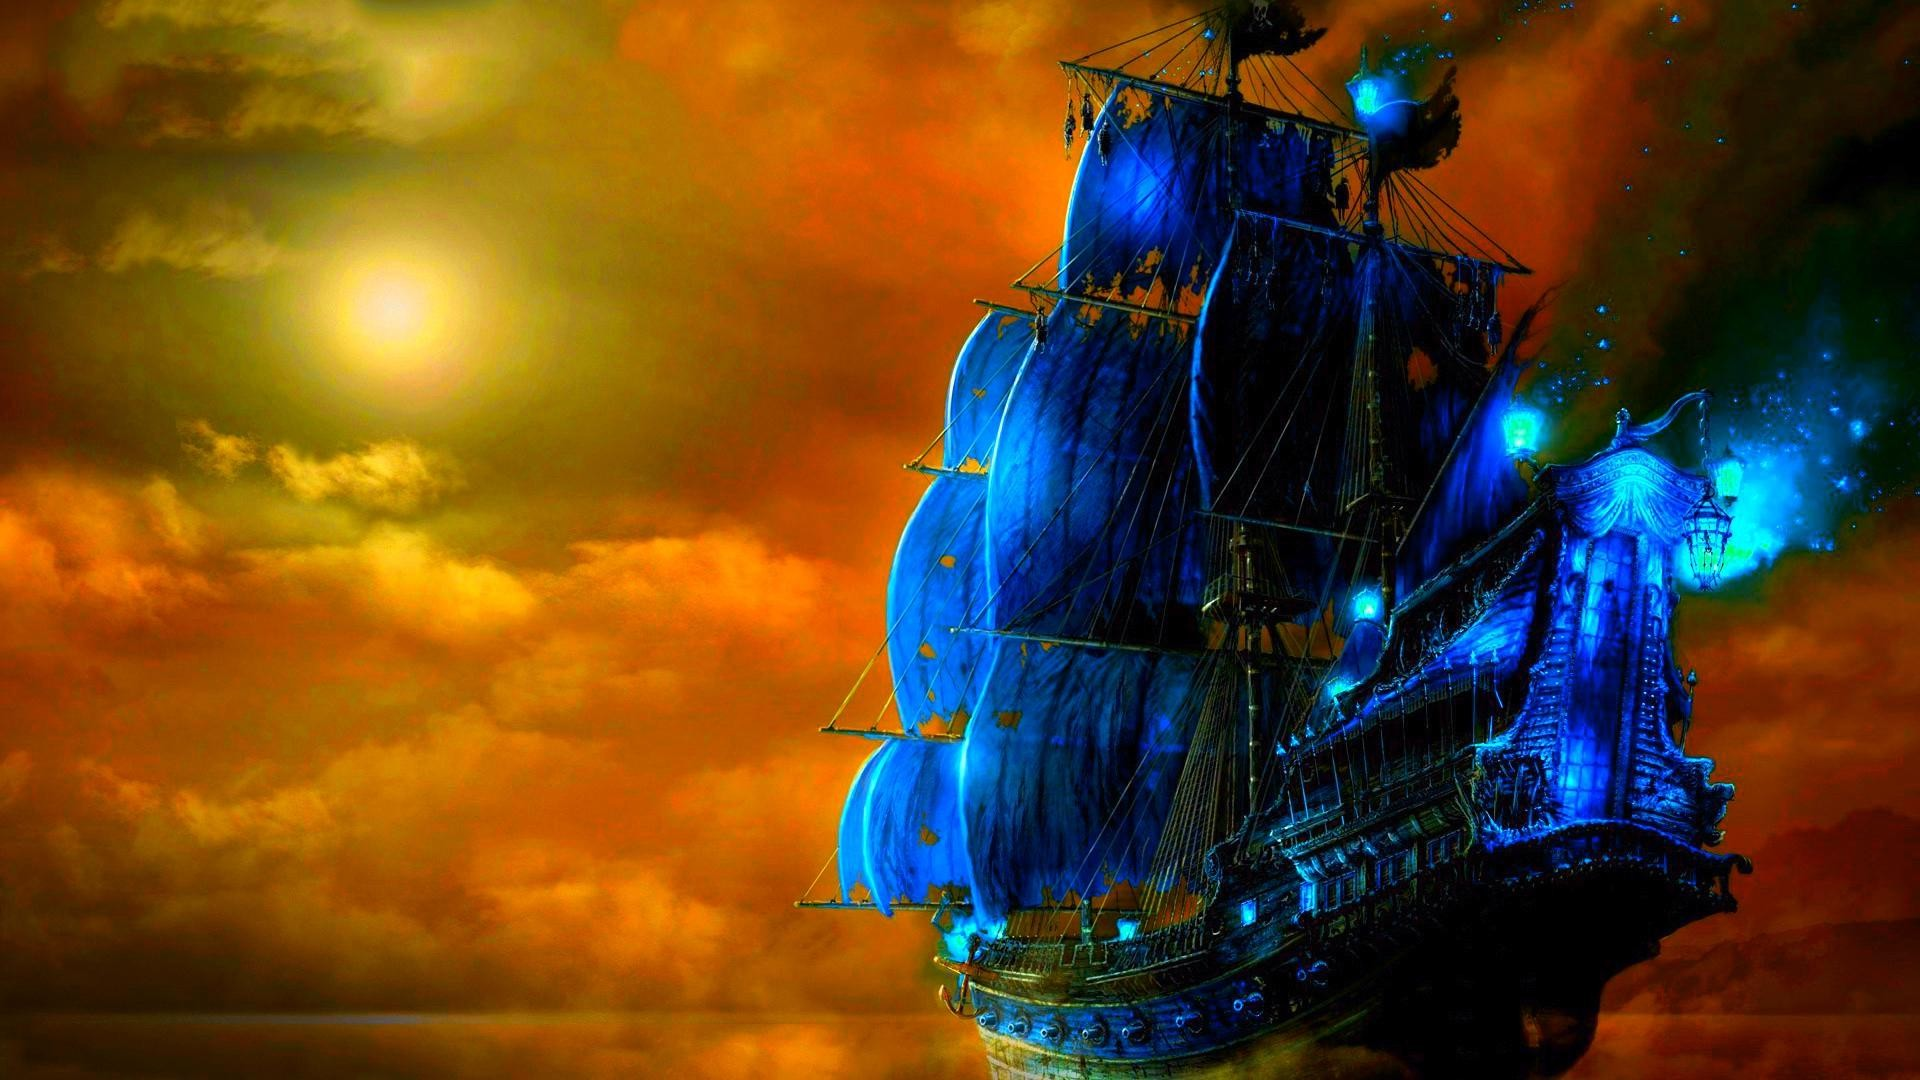 Amazing Wallpapers For Mobile Touch: Pirate Ship Wallpaper ·① Download Free High Resolution